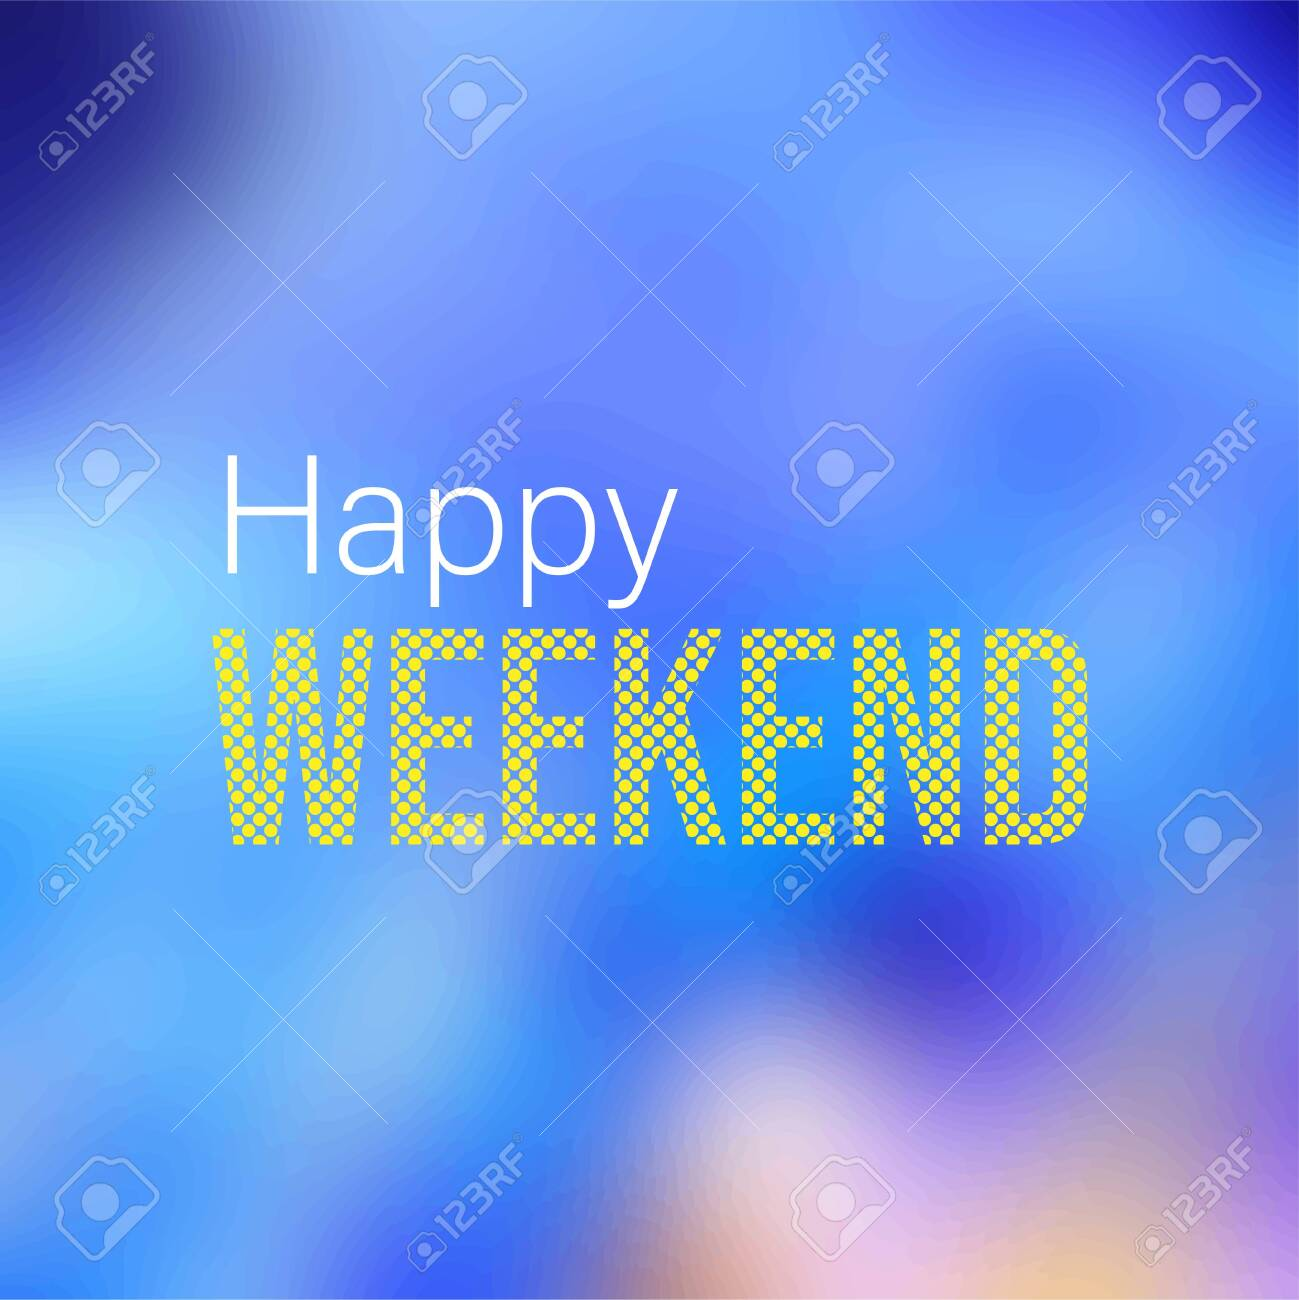 happy weekend Life quote with modern background vector illustration